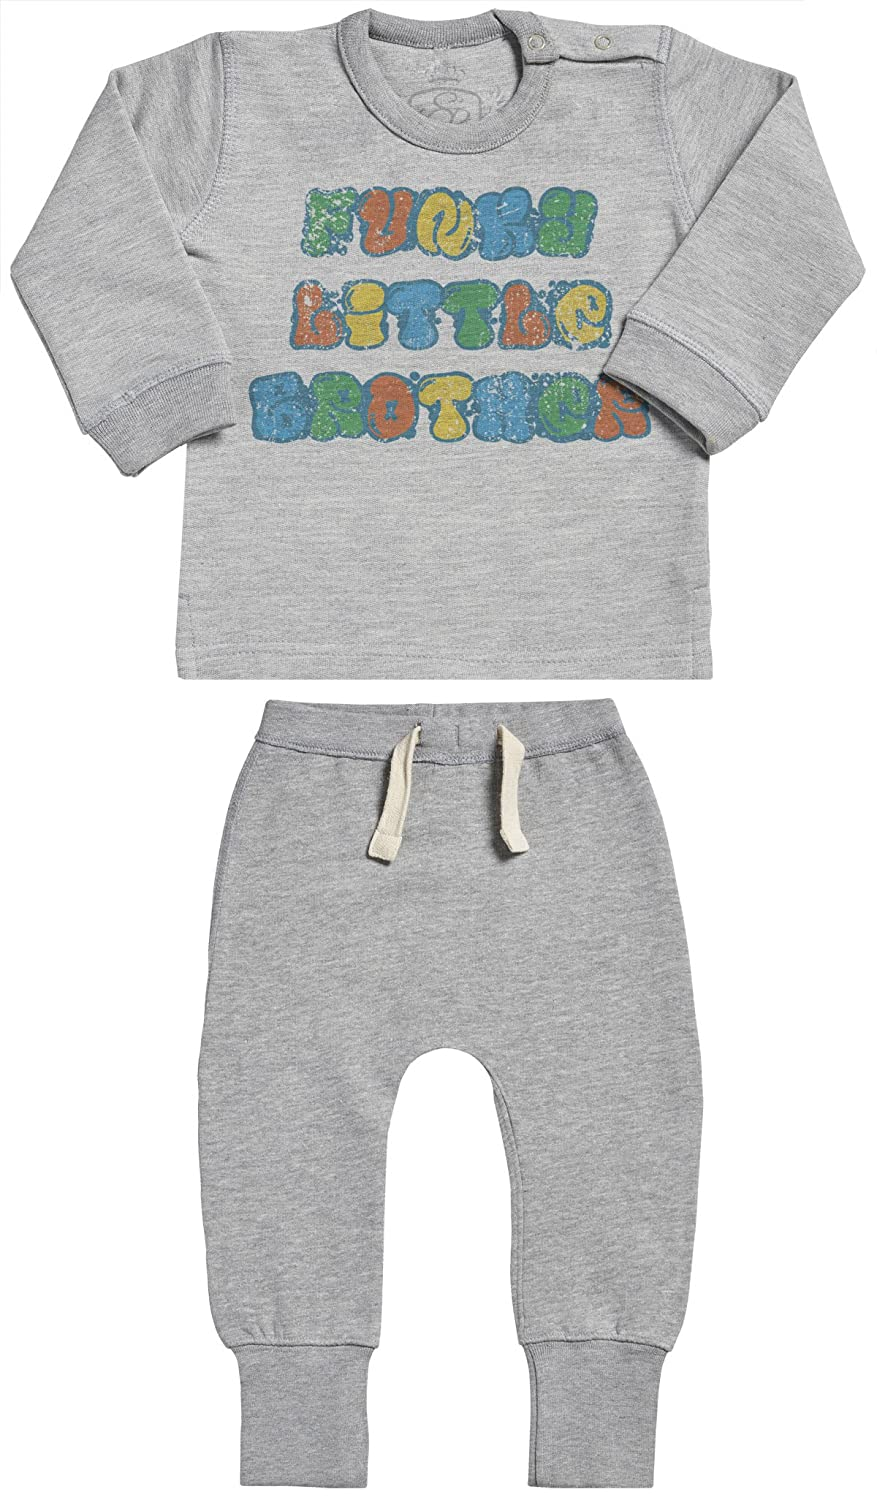 Baby Gift Set Funky Little Brother Baby Outfit Baby Sweater /& Baby Joggers Baby Clothing Outfit SR